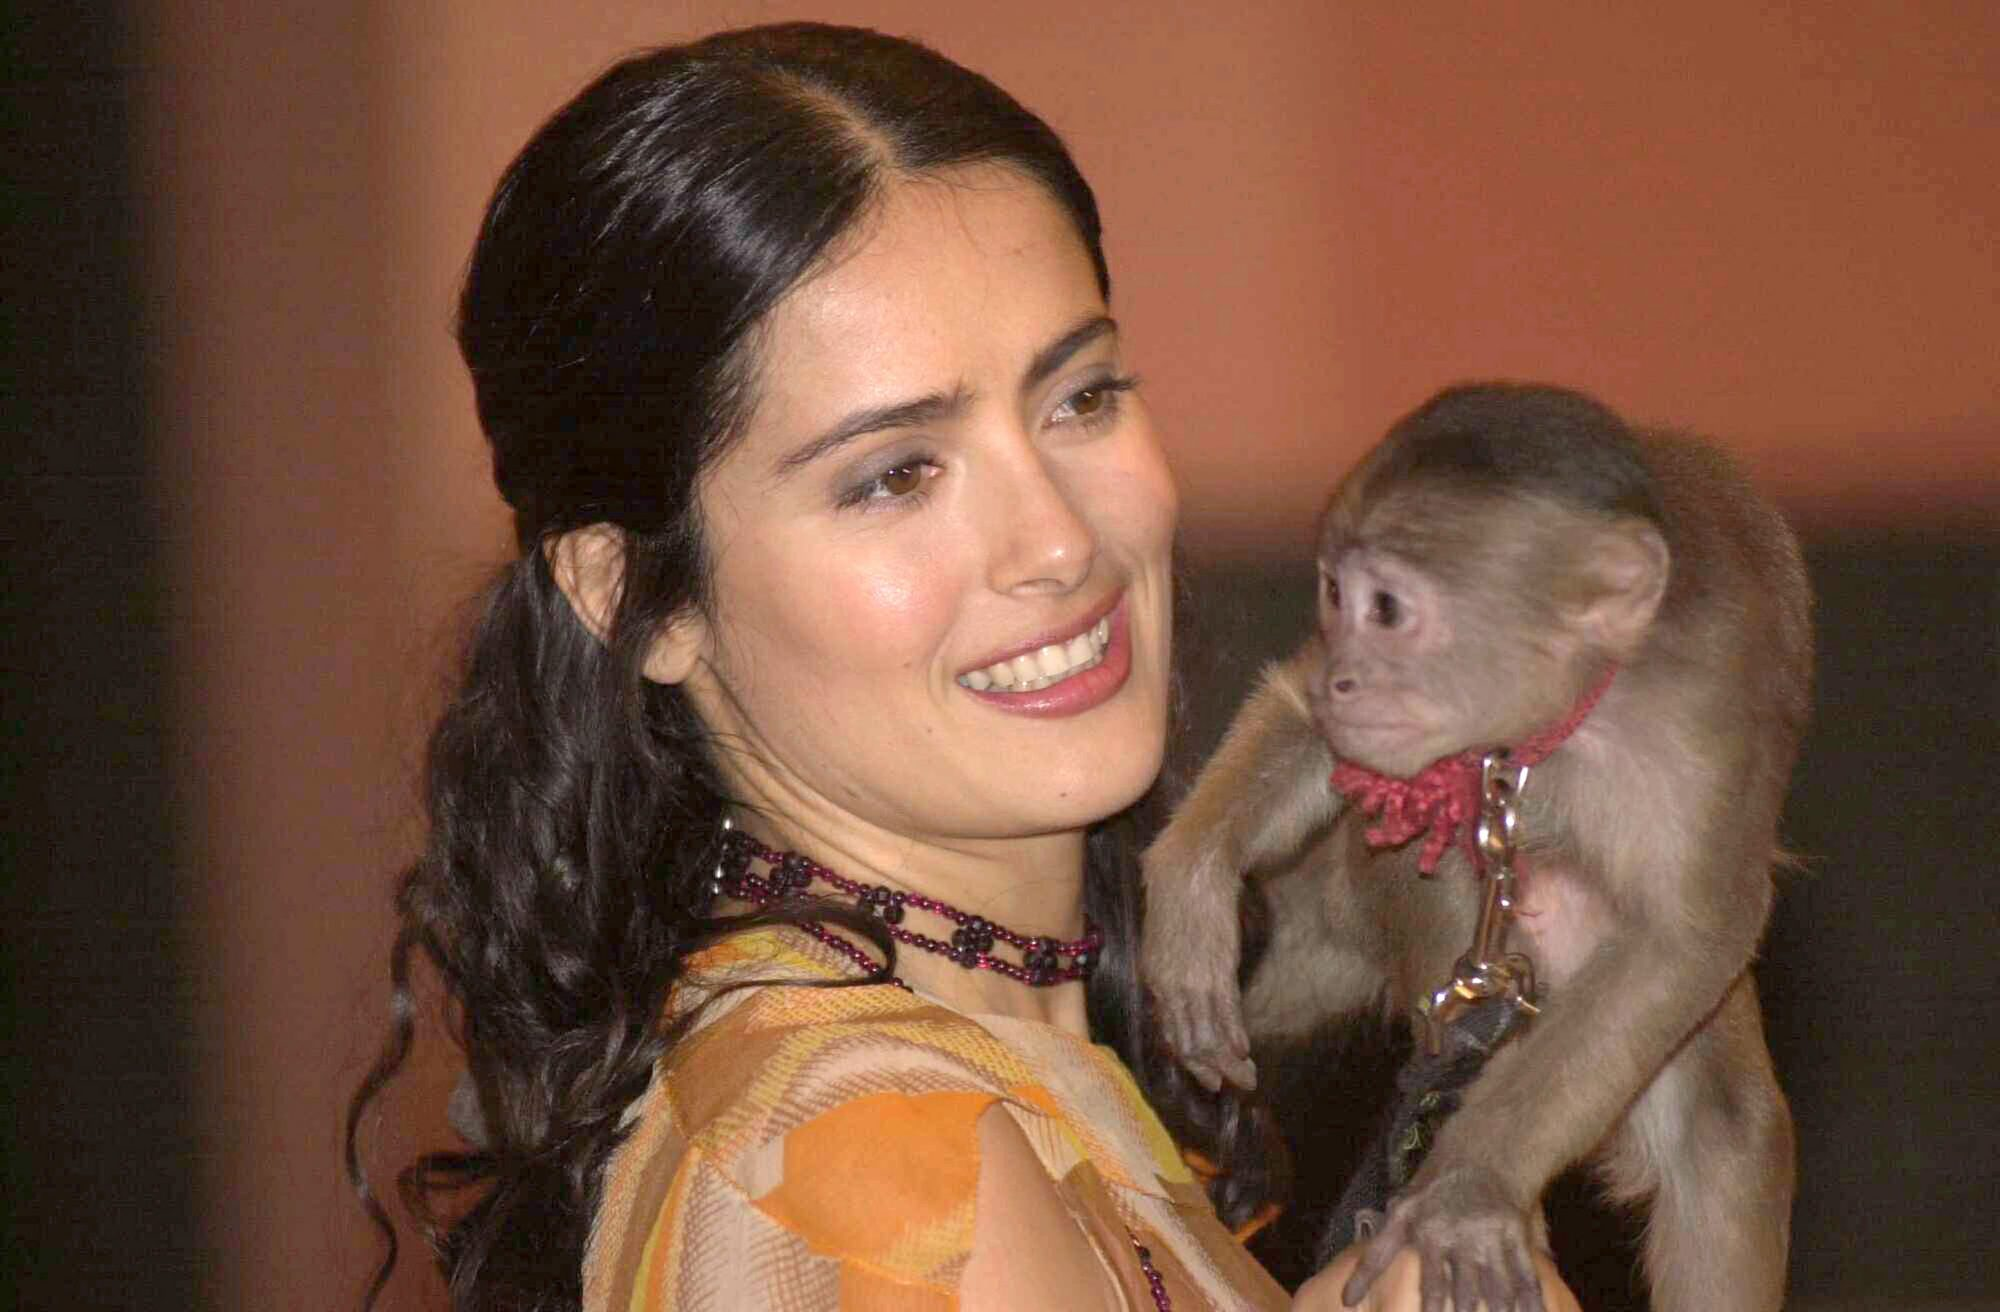 mexican-actress-salma-hayek-holds-tyson-the-spider-monkey-.jpg